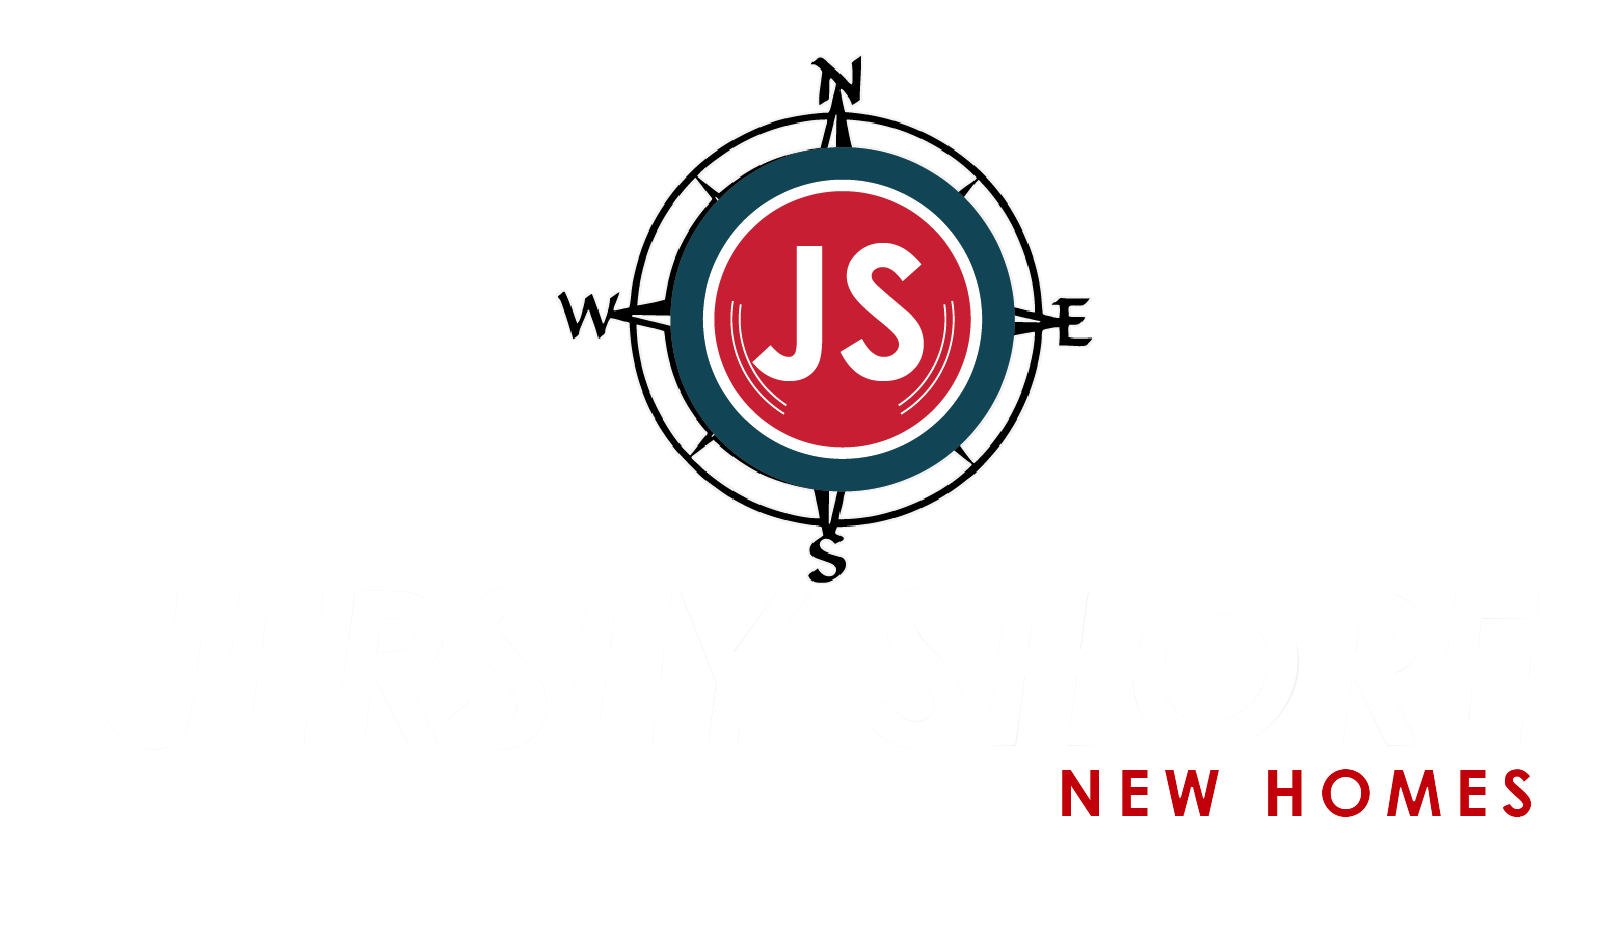 Jersey Shore New Homes